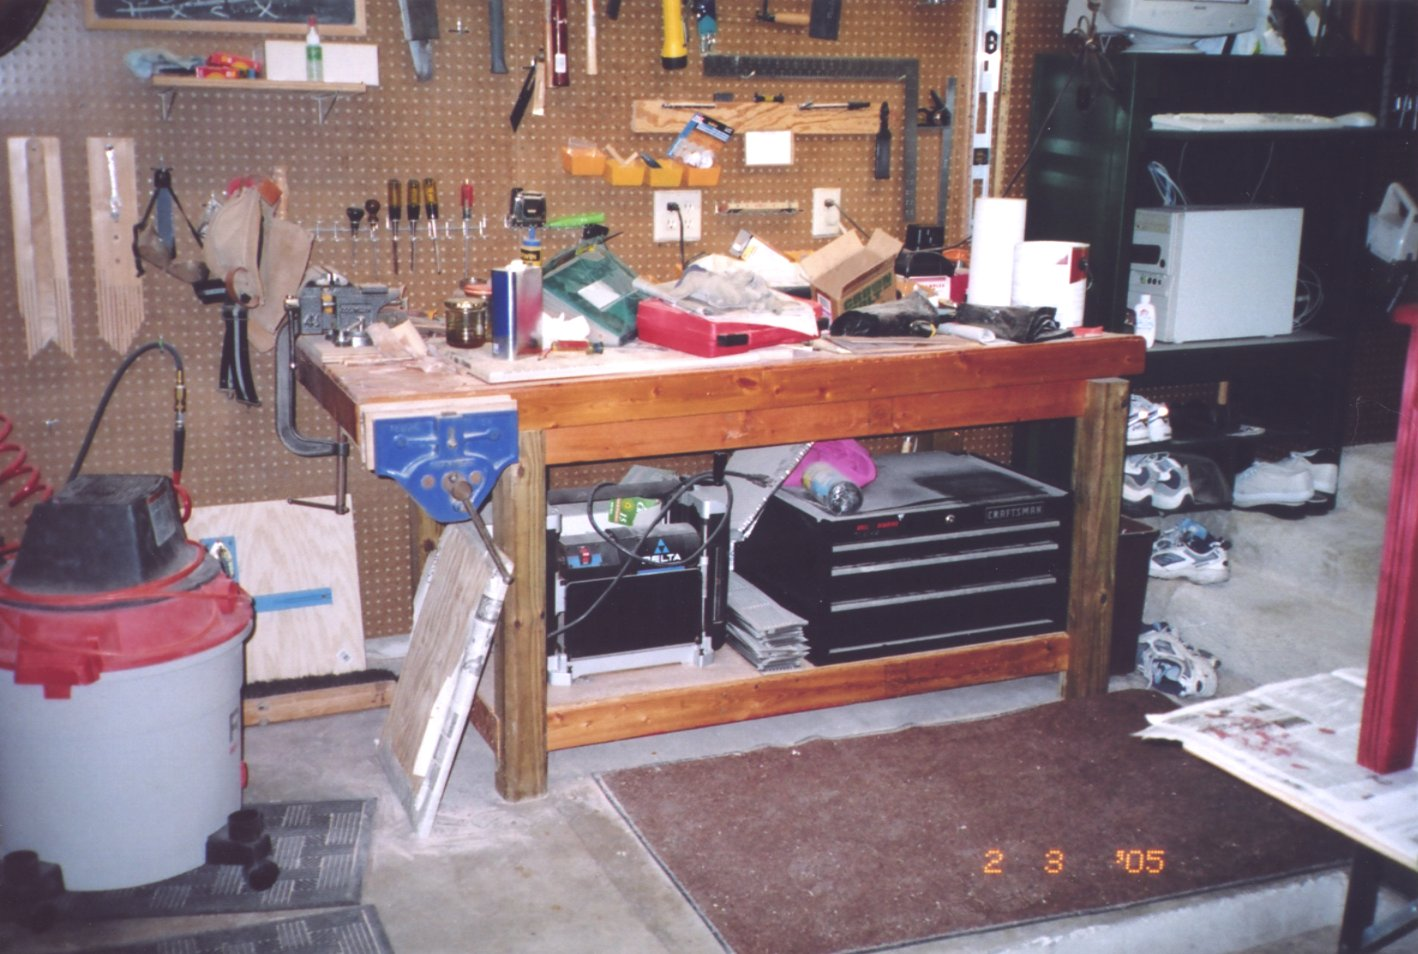 the workbench plans ideas club bench and corner how own your for garage in storage to shelves build workbenches gogenie work